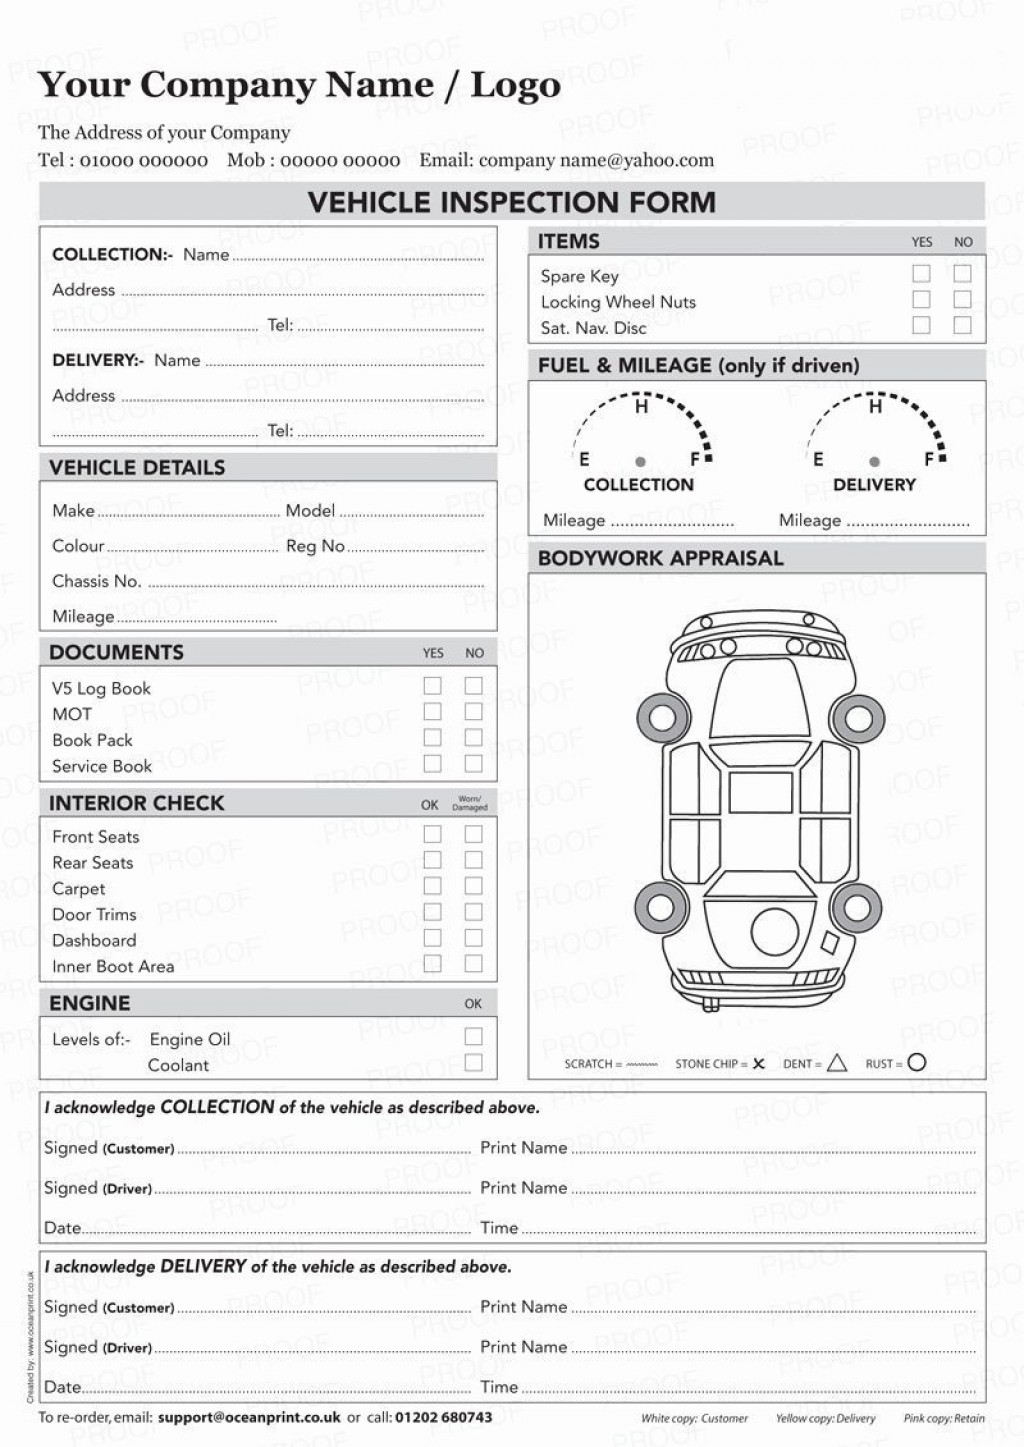 003 Awesome Vehicle Inspection Form Template Sample  Printable Pdf WordLarge